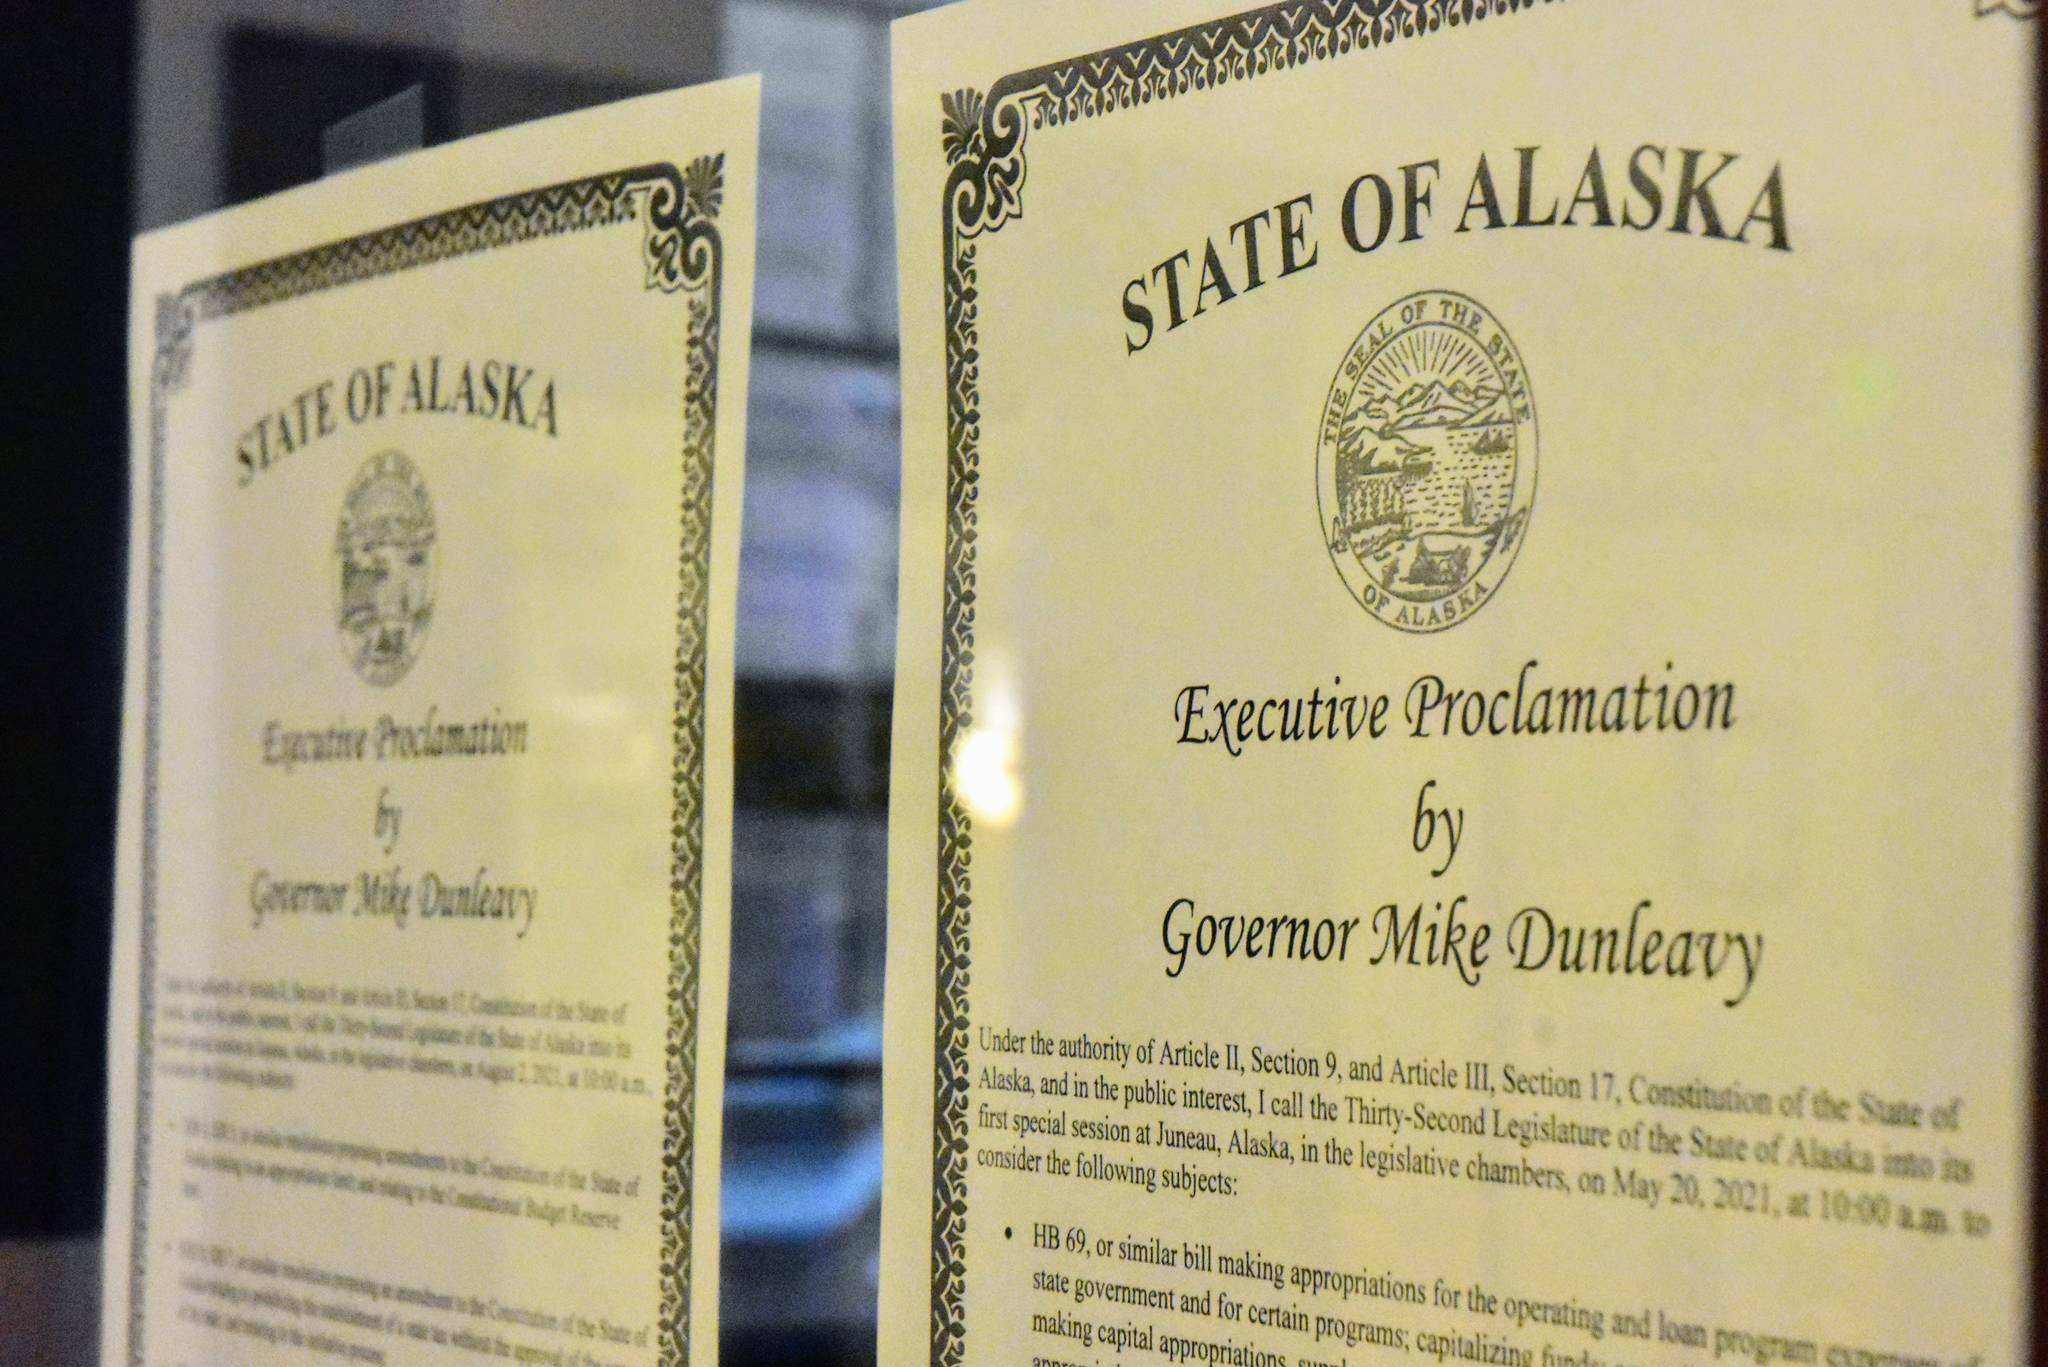 Proclamations from Gov. Mike Dunleavy calling special sessions of the Alaska State Legislature for late May and early August were posted in the otherwise quiet office of the House Clerk on Friday, May 21, 2021. The first special session has started but the Capitol building was quiet as most of the work before lawmakers will take place in committee. (Peter Segall / Juneau Empire)